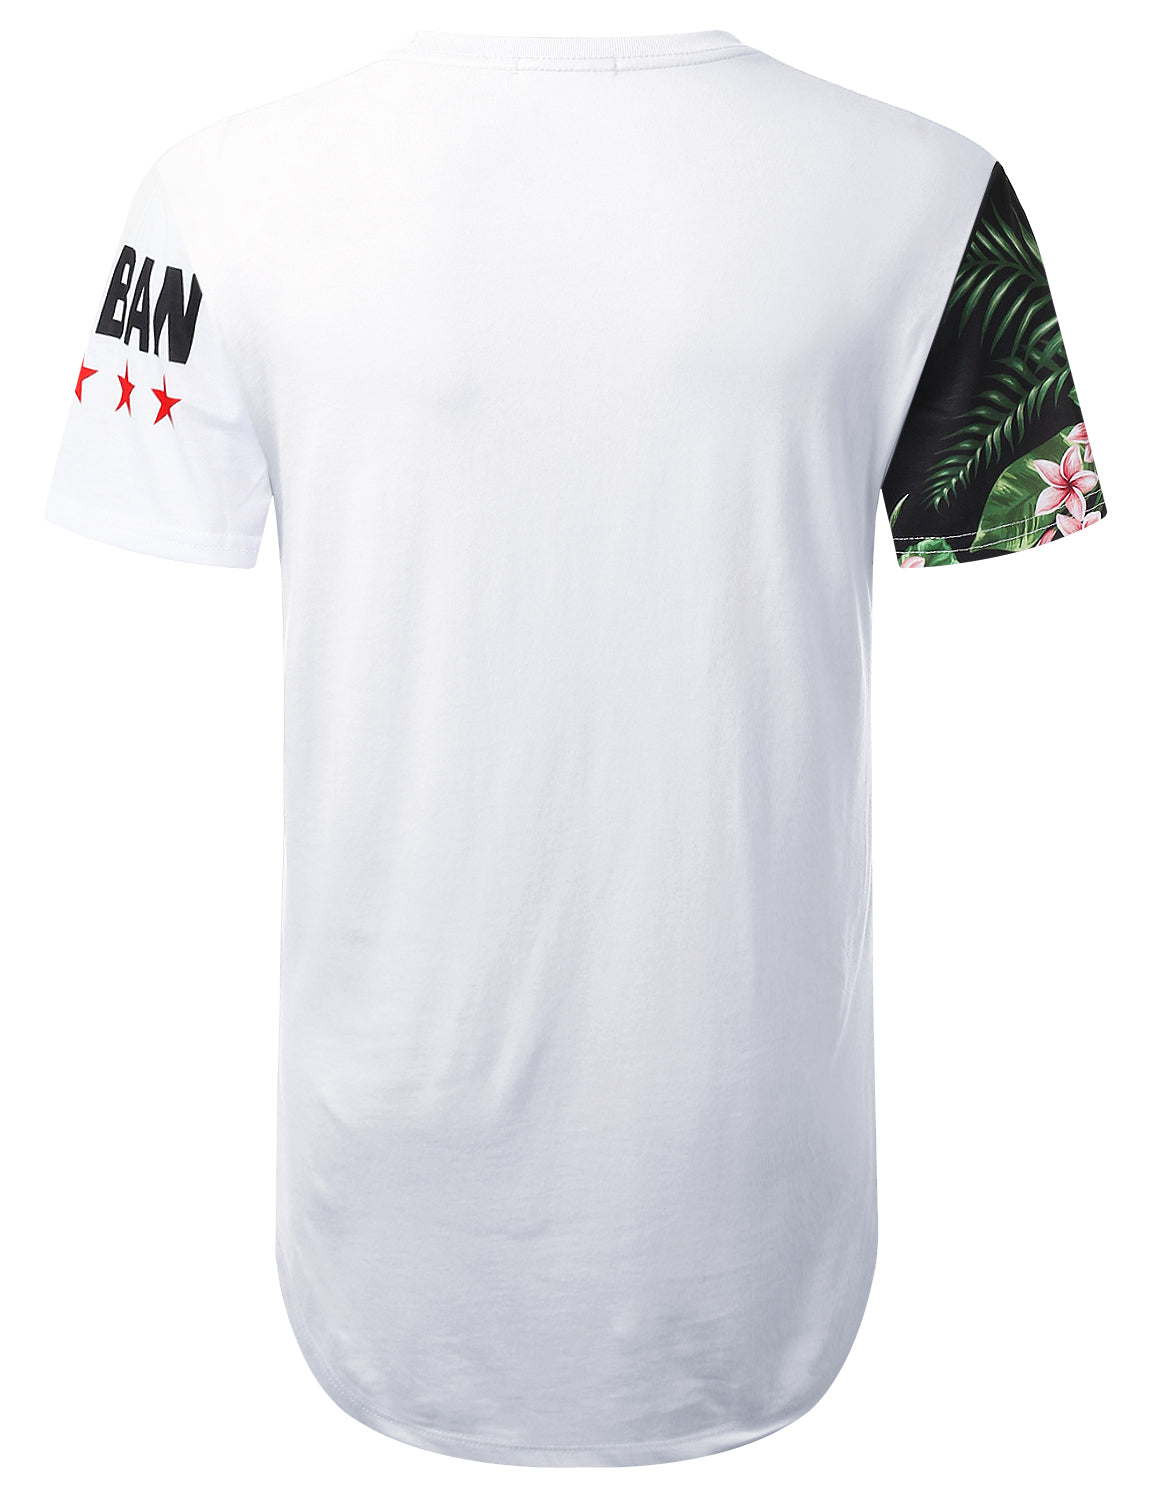 WHITE Urban Vertical Floral Longline T-shirt - URBANCREWS